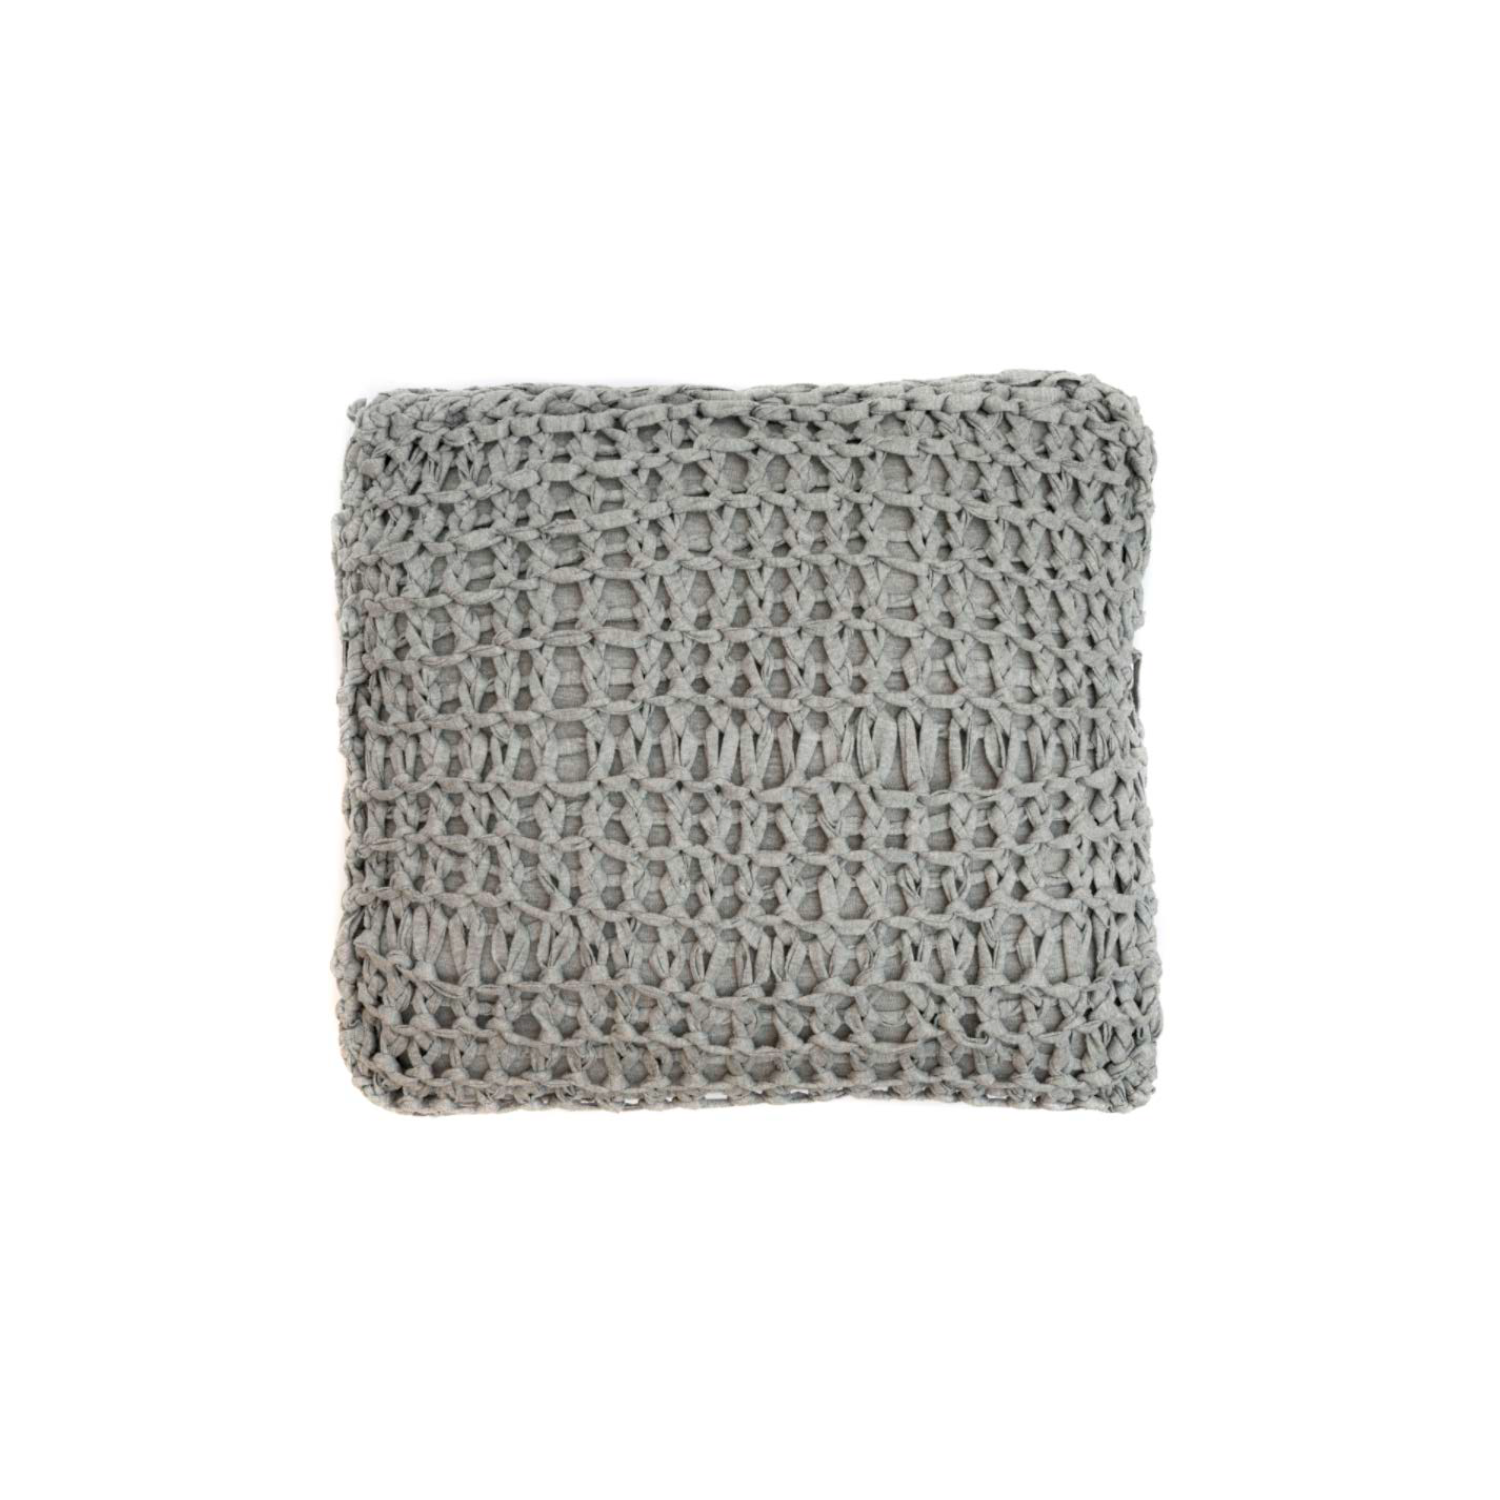 Stockholm Knitted Cotton Cushion Square - The Stockholm Line is carefully knitted within a trained community of women that found in their craft a way to provide for their families, each one of these cushions and throws is unique.  Elisa Atheniense Home soft indoors collection is made with natural cotton fibres, eco-friendly, handwoven or elaborated using traditional hand-loom techniques. The use of organic materials brings softness and comfort to the space. This collection combines their mission for responsible sourcing and manufacturing.  The hand woven cotton, washable cushion cover is made in Brazil and the inner cushion is made in the UK. All cushions come with Hollow Fibre filling. European Duck Feathers are optional upon request at an extra cost. Please enquire for more information and see colour chart for reference.   | Matter of Stuff